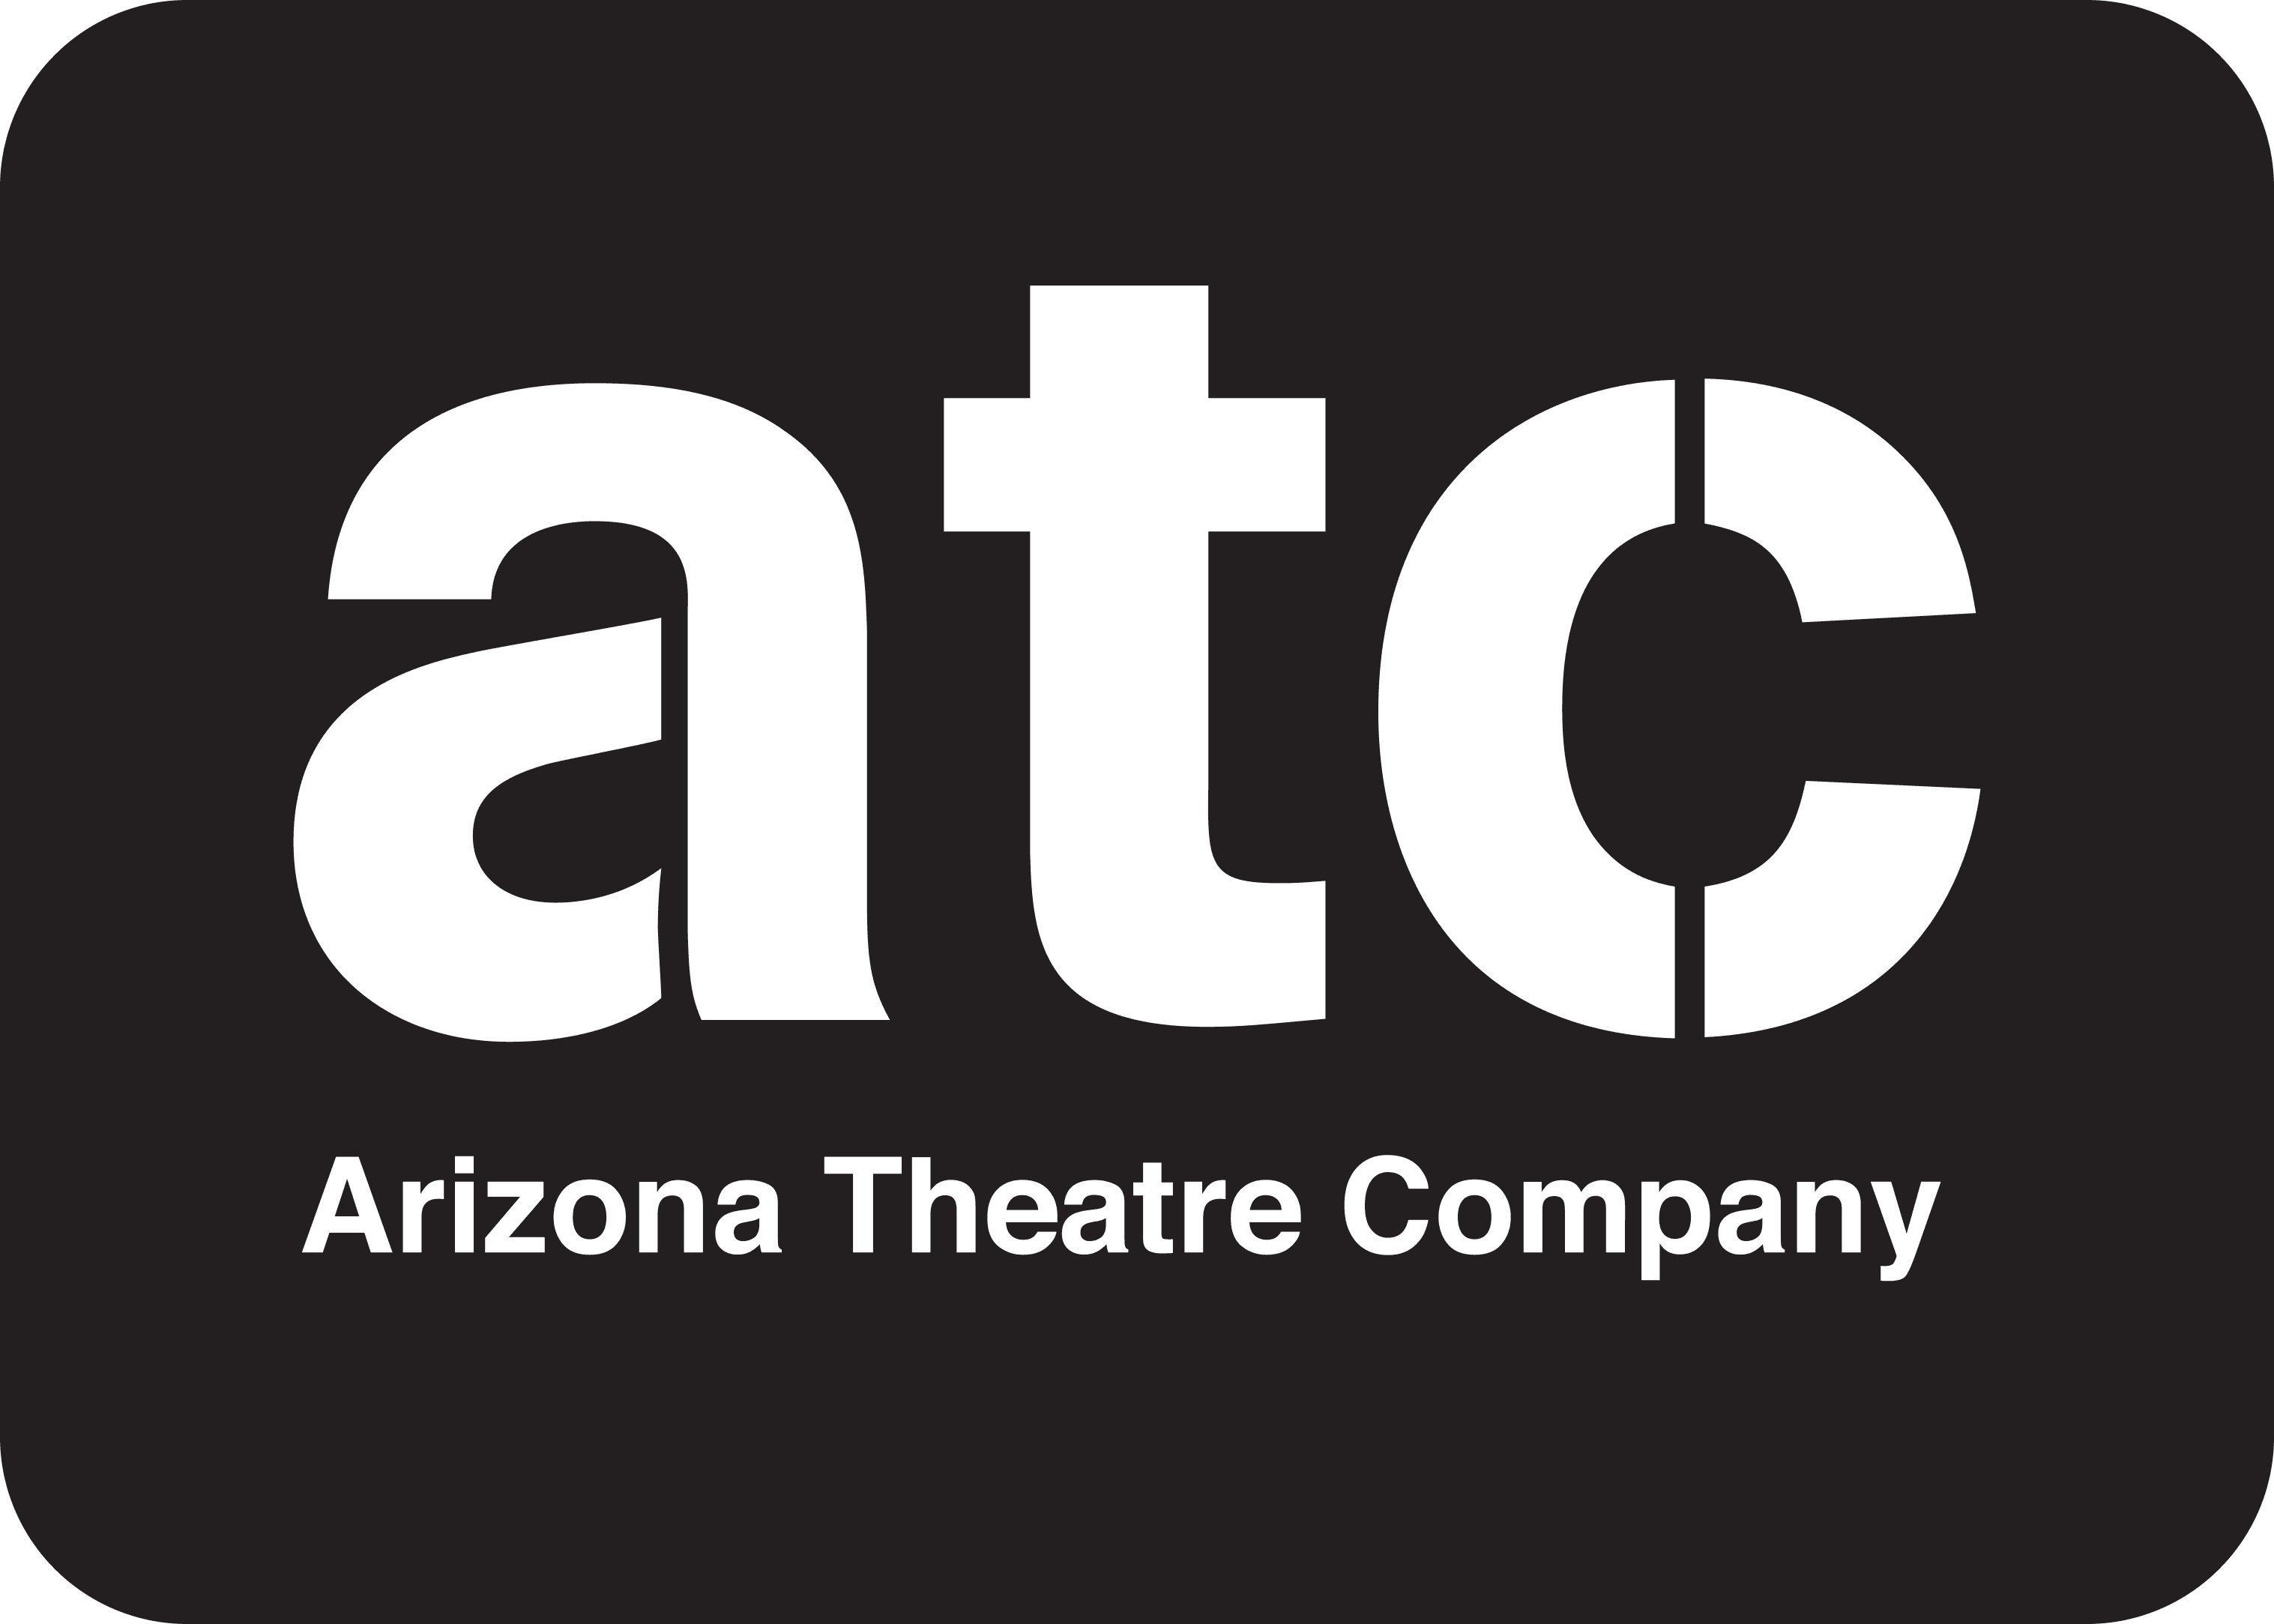 Supported by Arizona Theatre Company